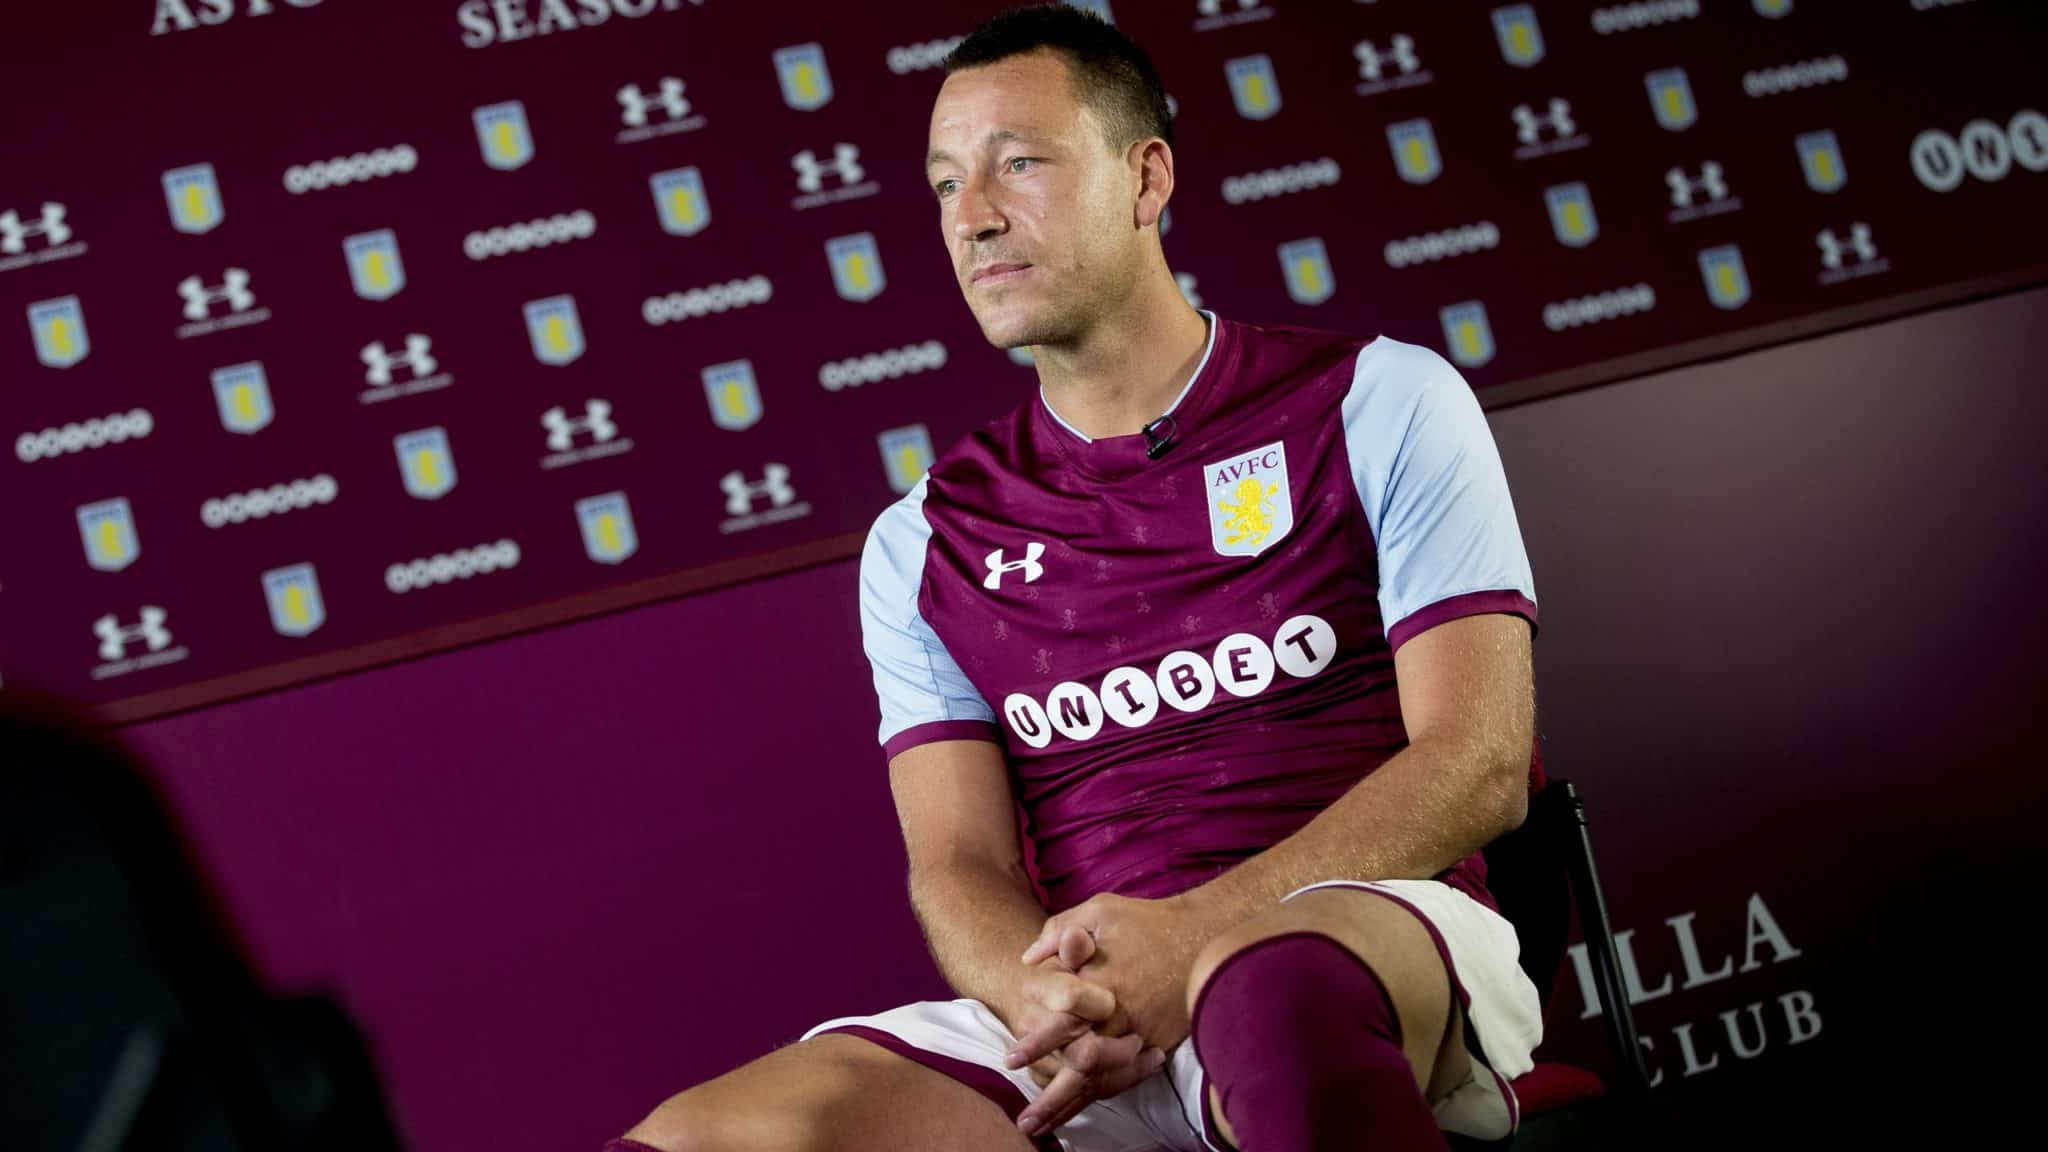 Aston Villa v Hull City - Championship Betting Preview